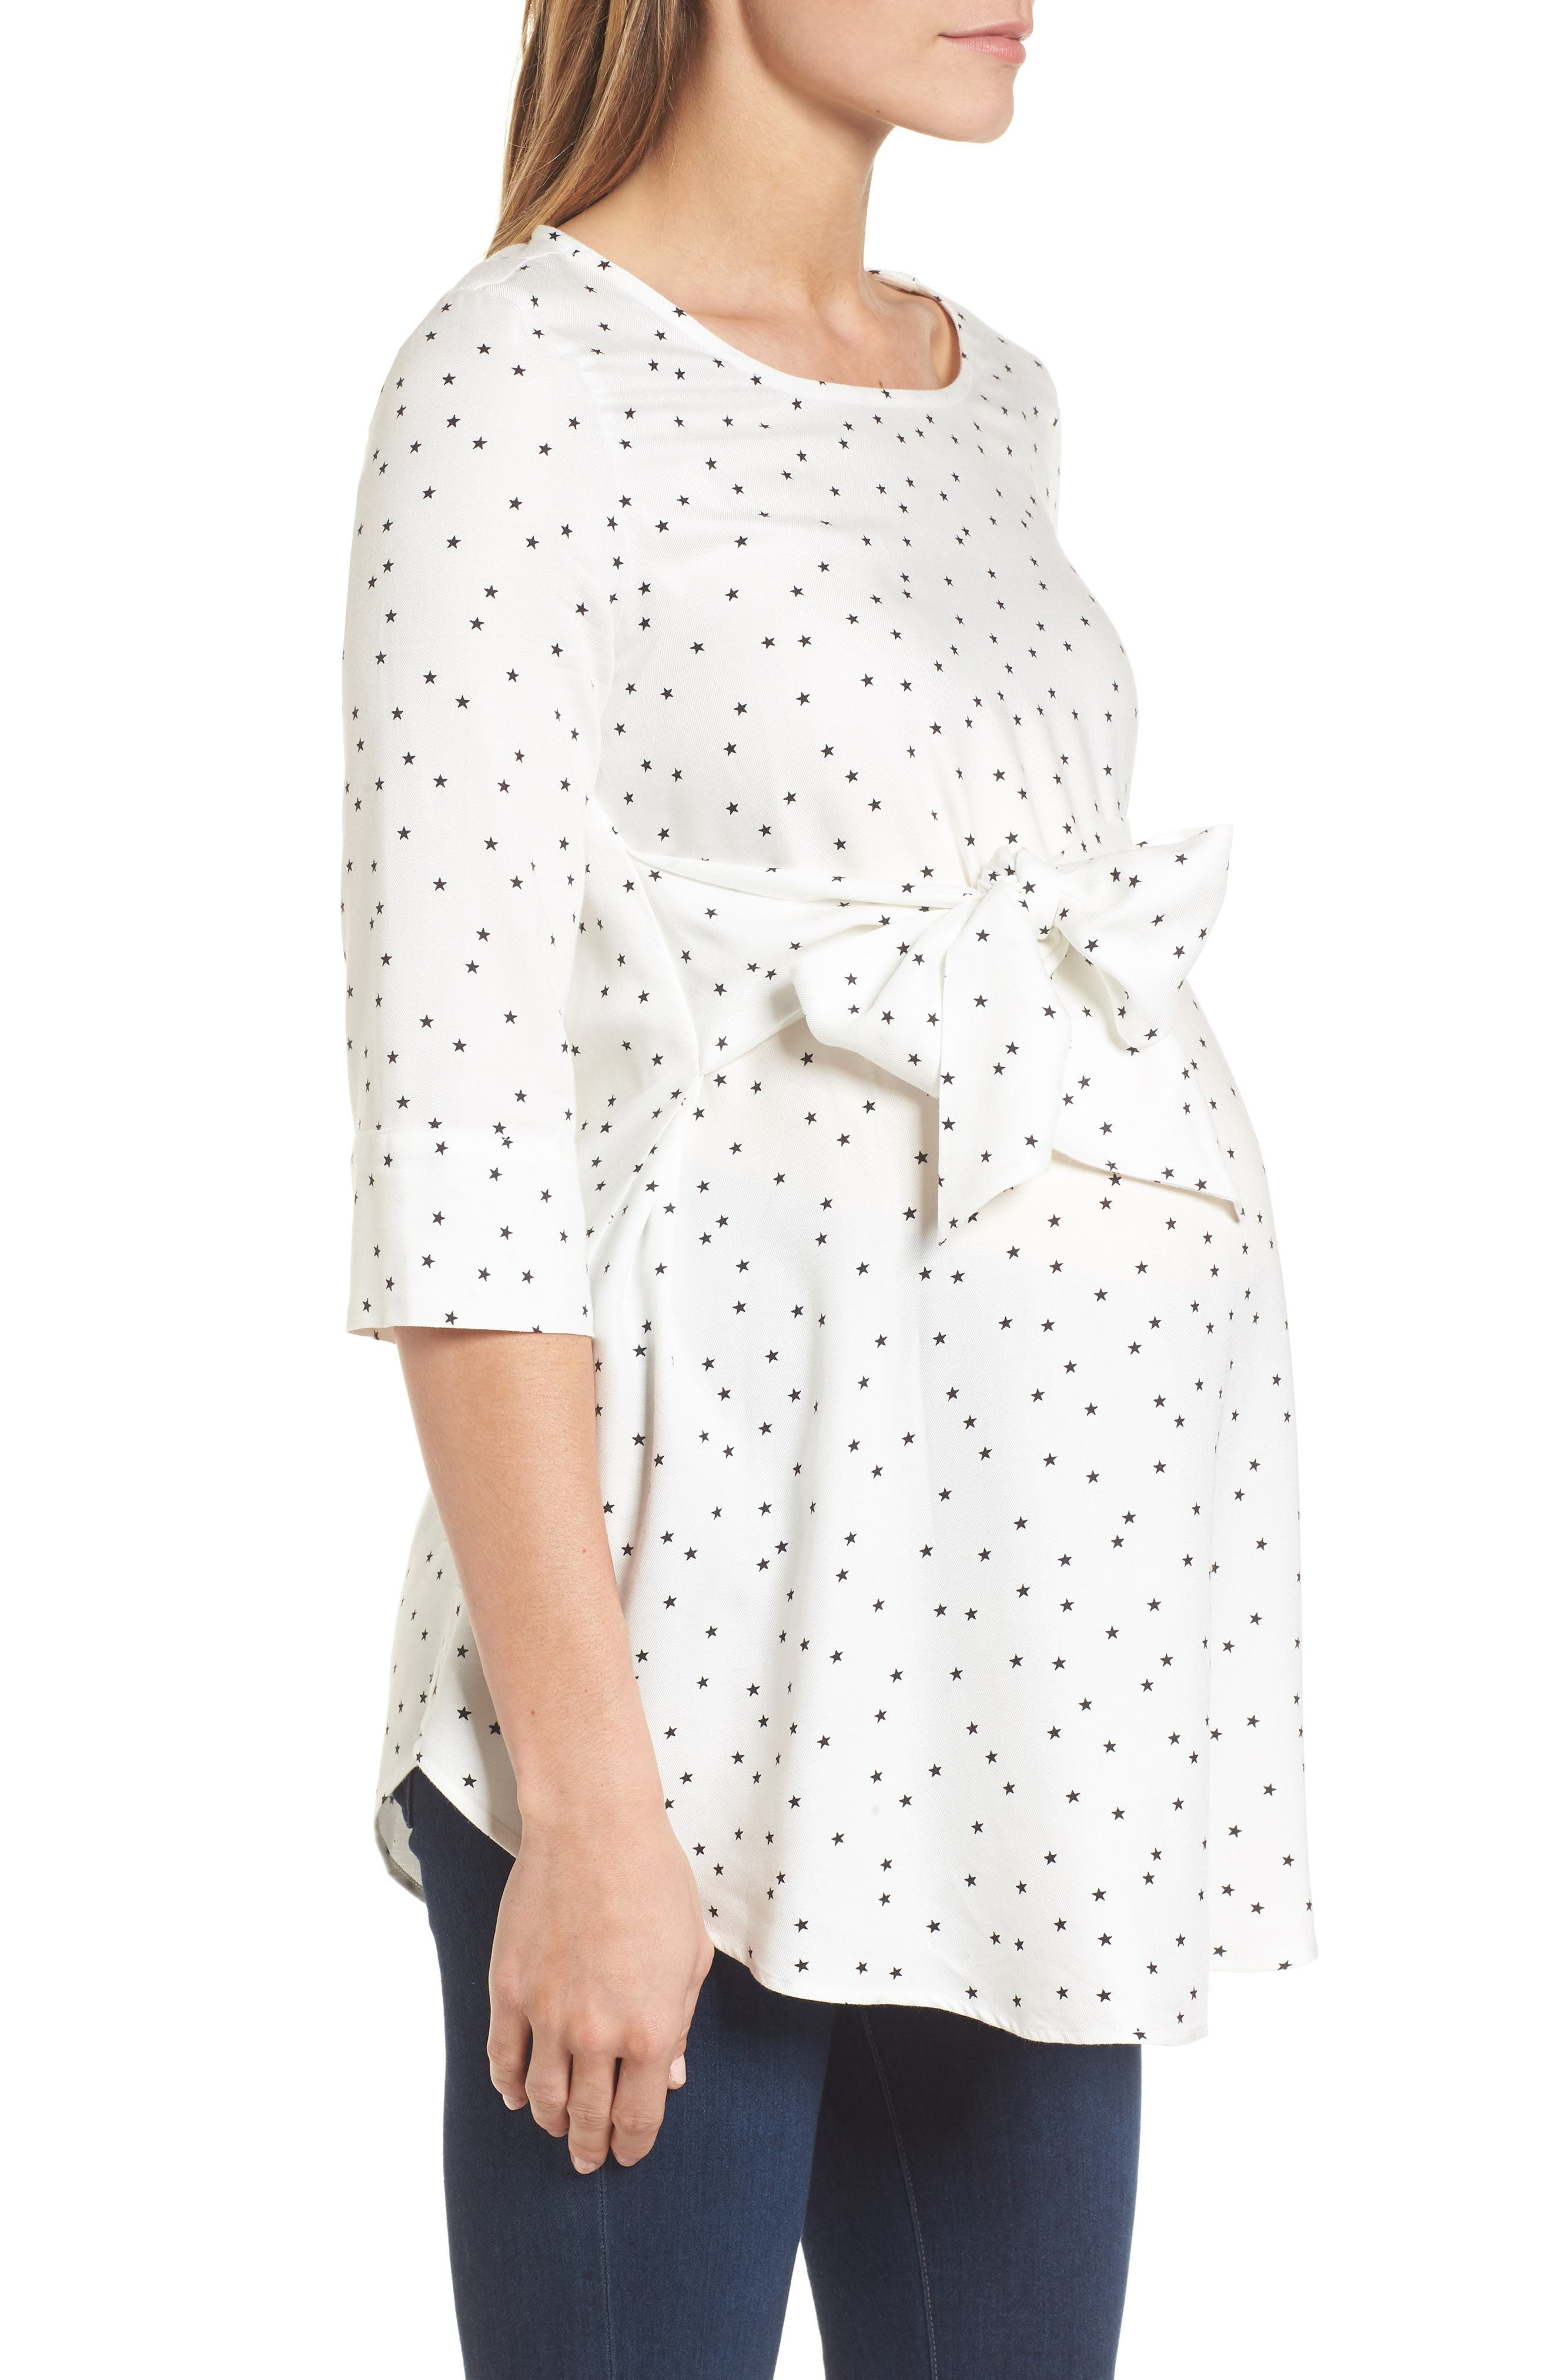 ISABELLA OLIVER,                             Selina Tie Front Maternity Top,                             Alternate thumbnail 3, color,                             OFF WHITE STAR PRINT